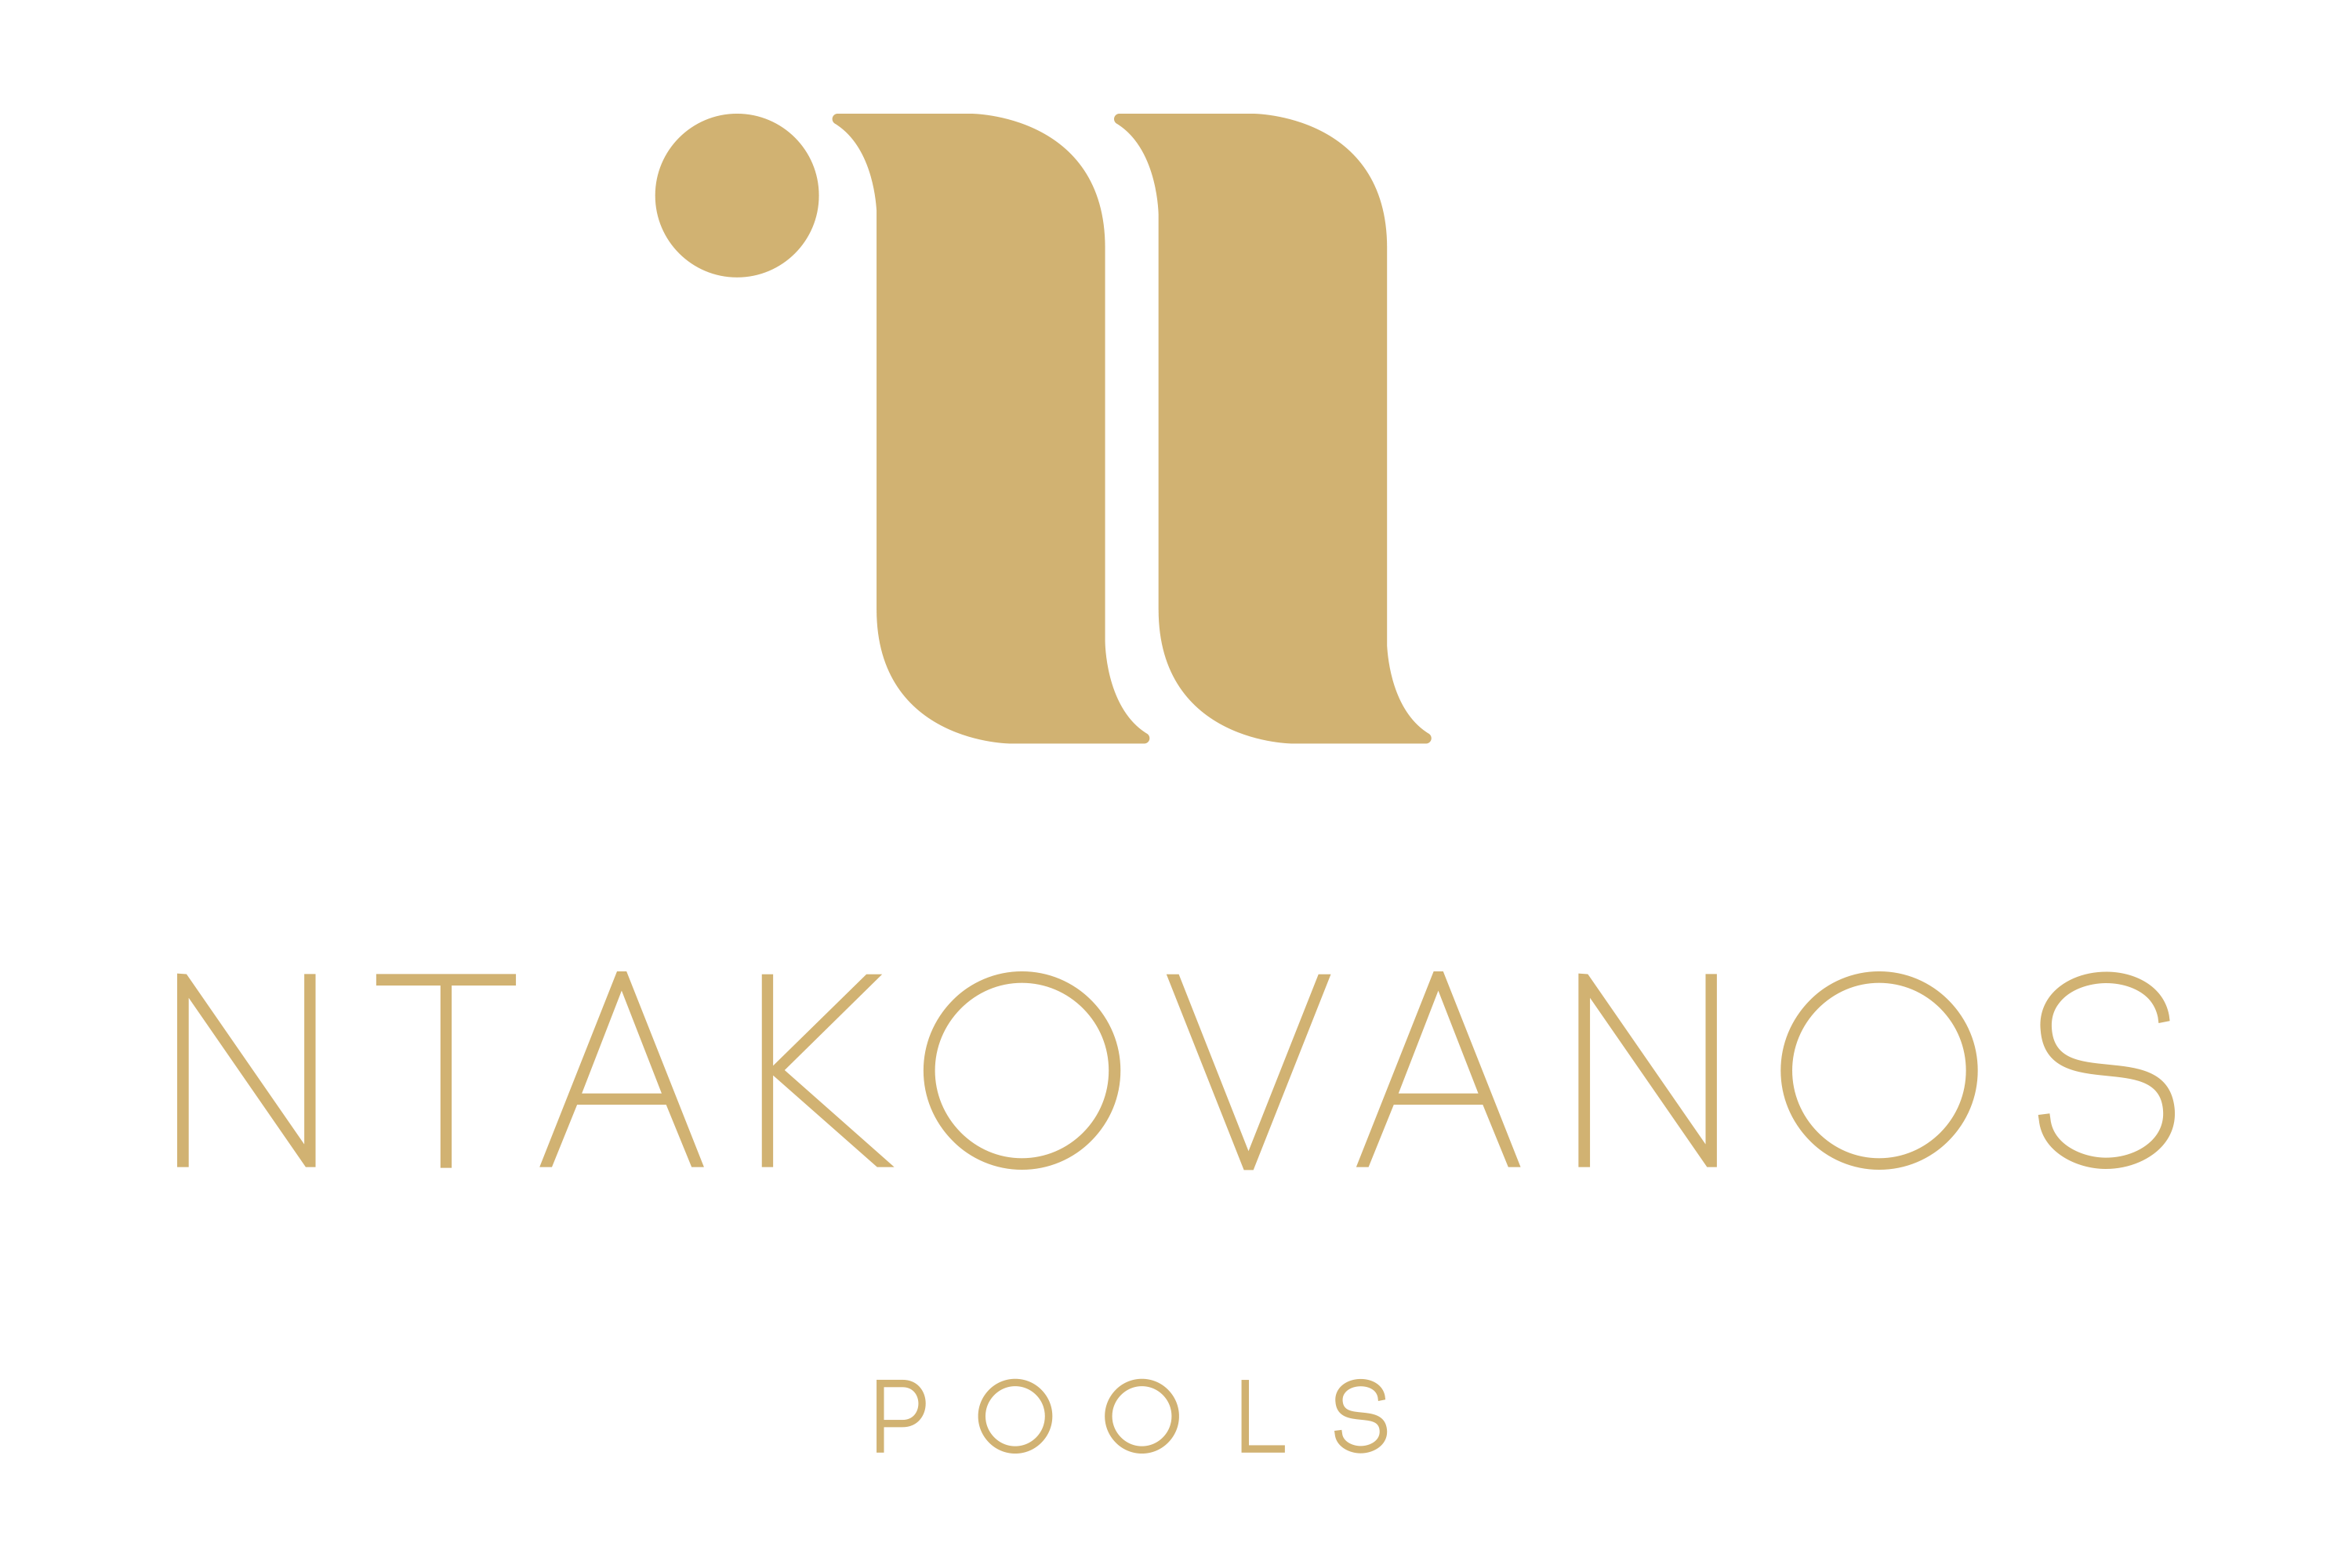 ntakovanos pools